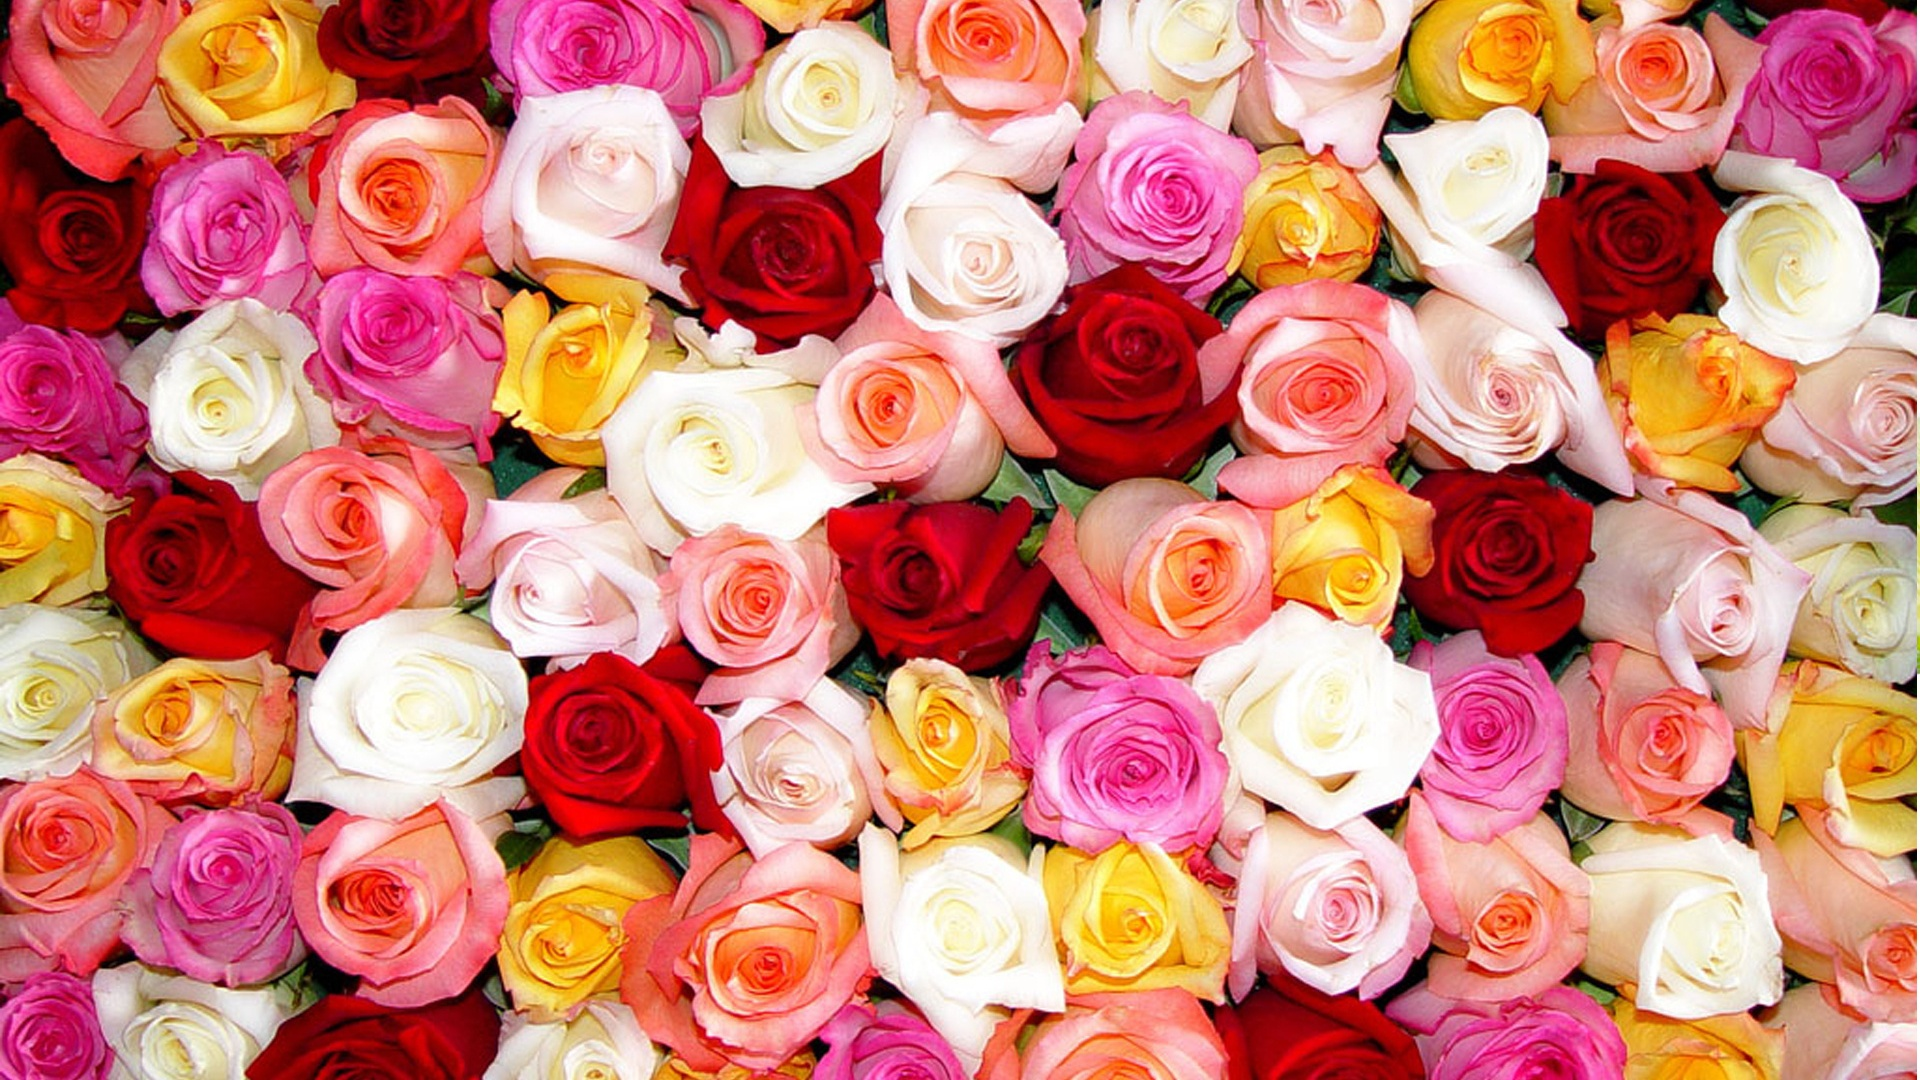 Free photo: Colorful roses wallpaper - rose, plants, roses - Non ...